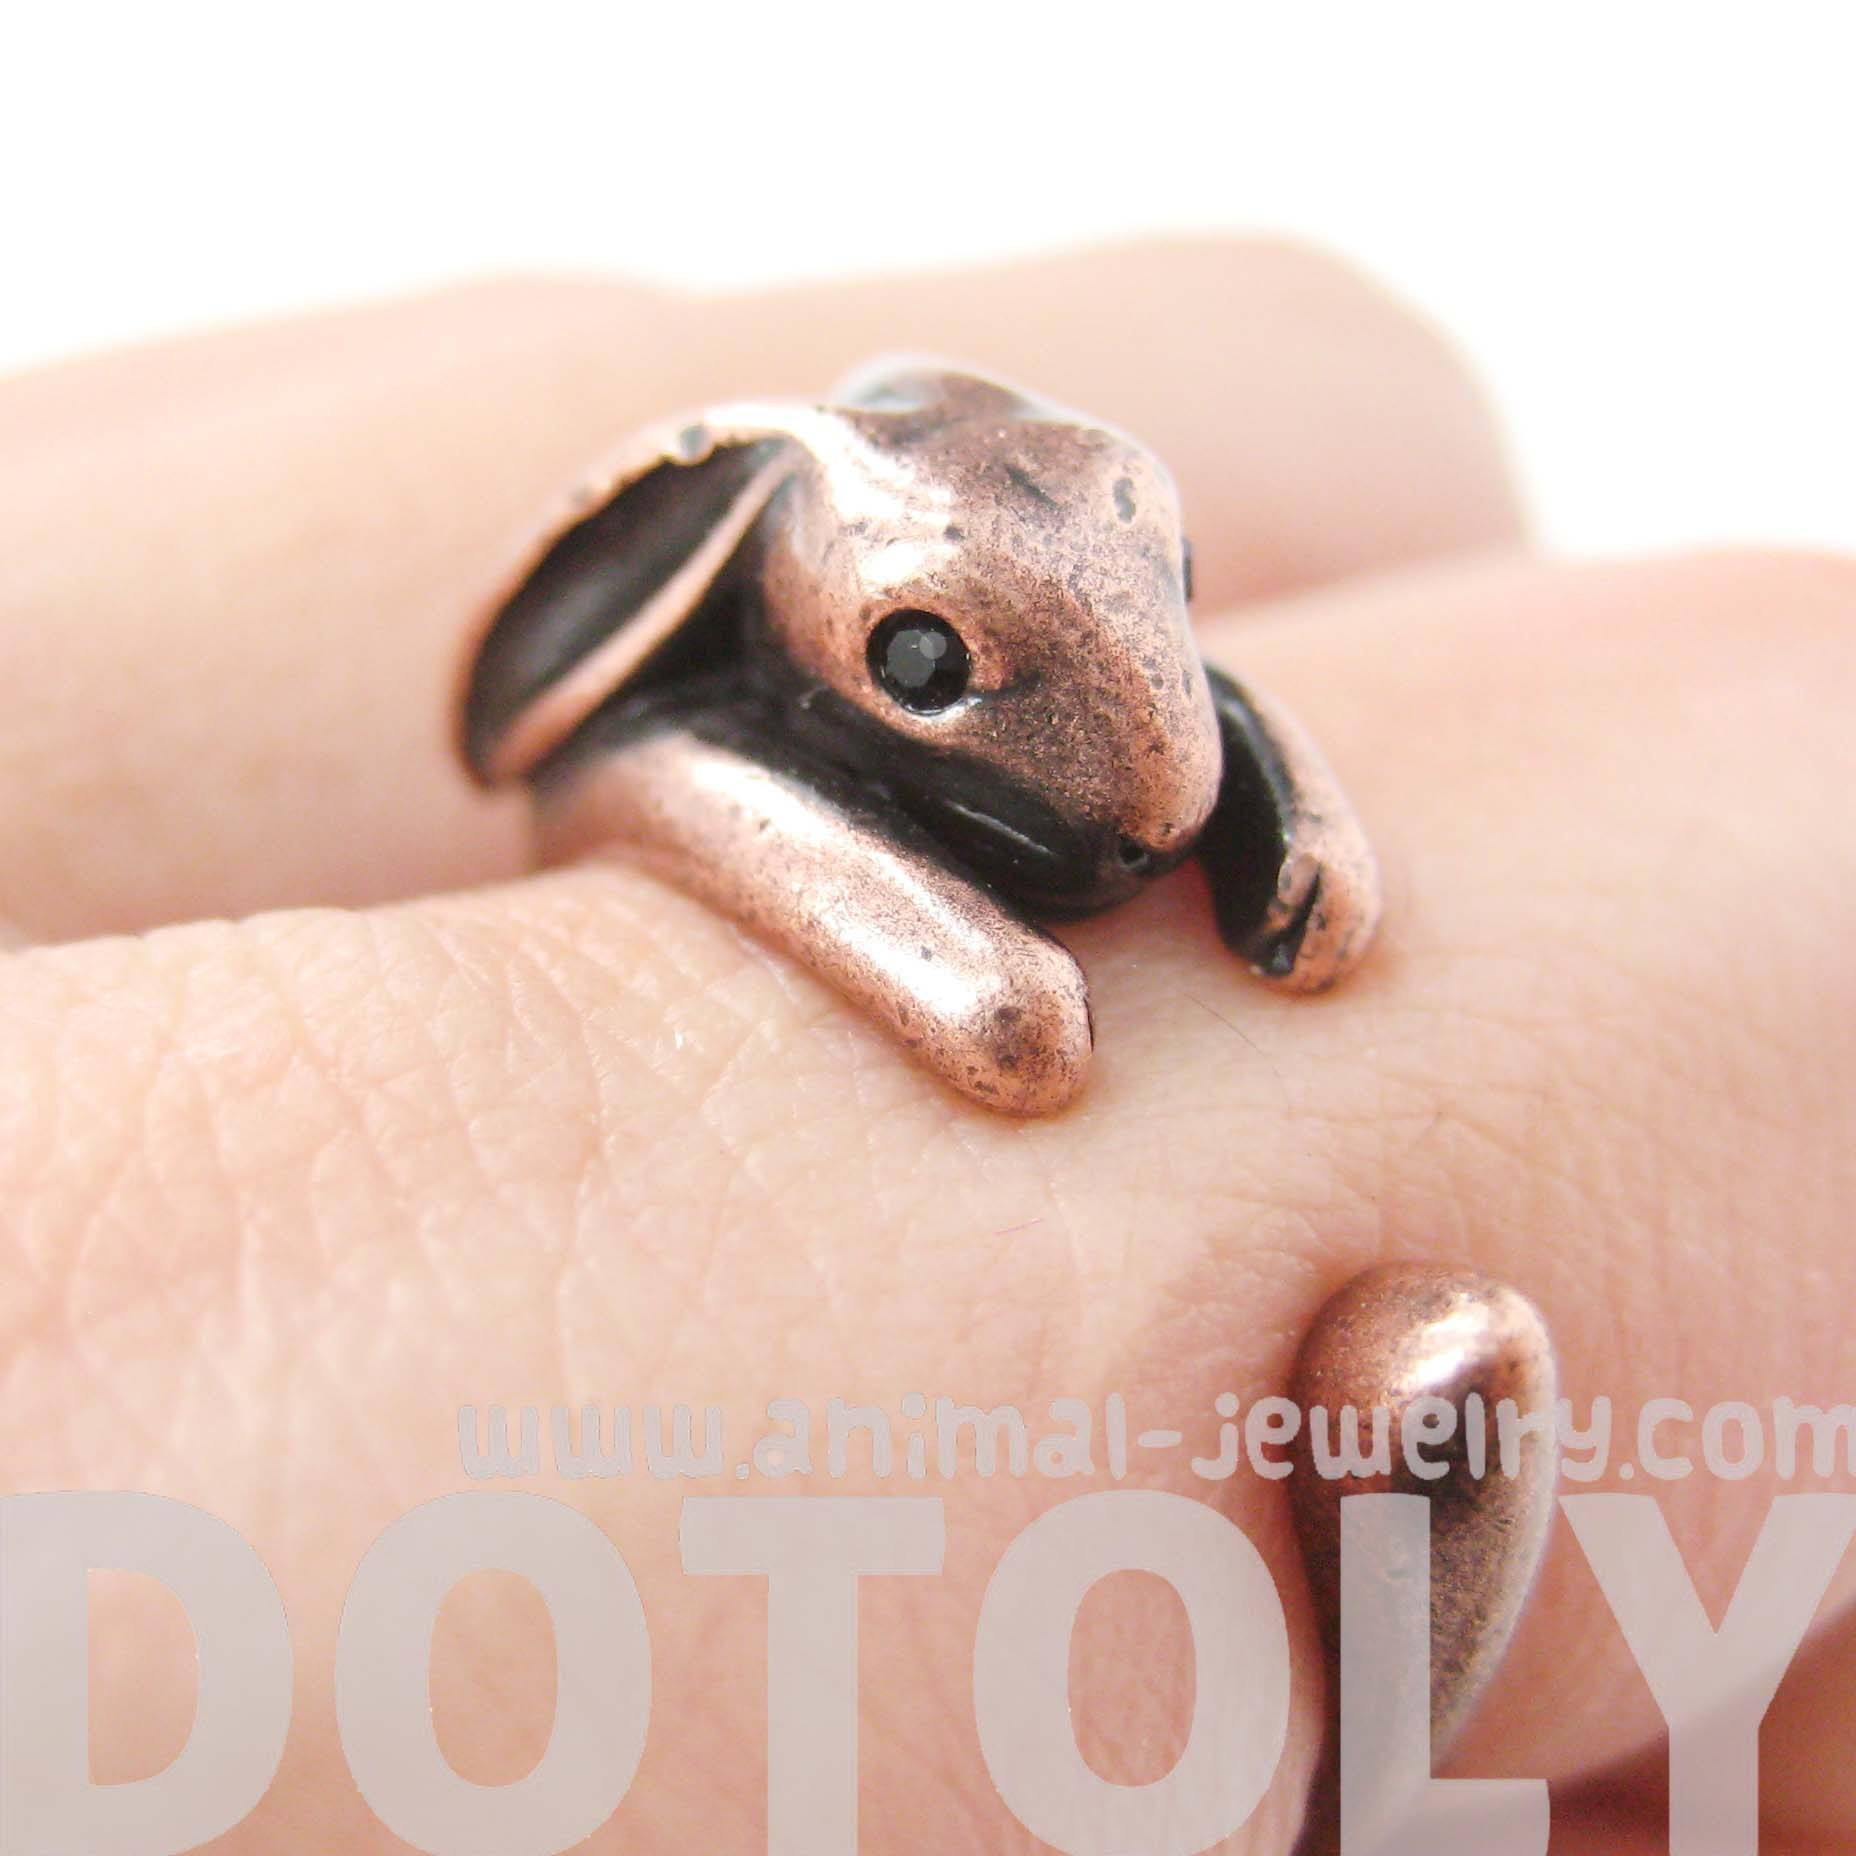 Bunny Rabbit Animal Wrap Around Ring in Copper | Sizes 4 to 9 Available